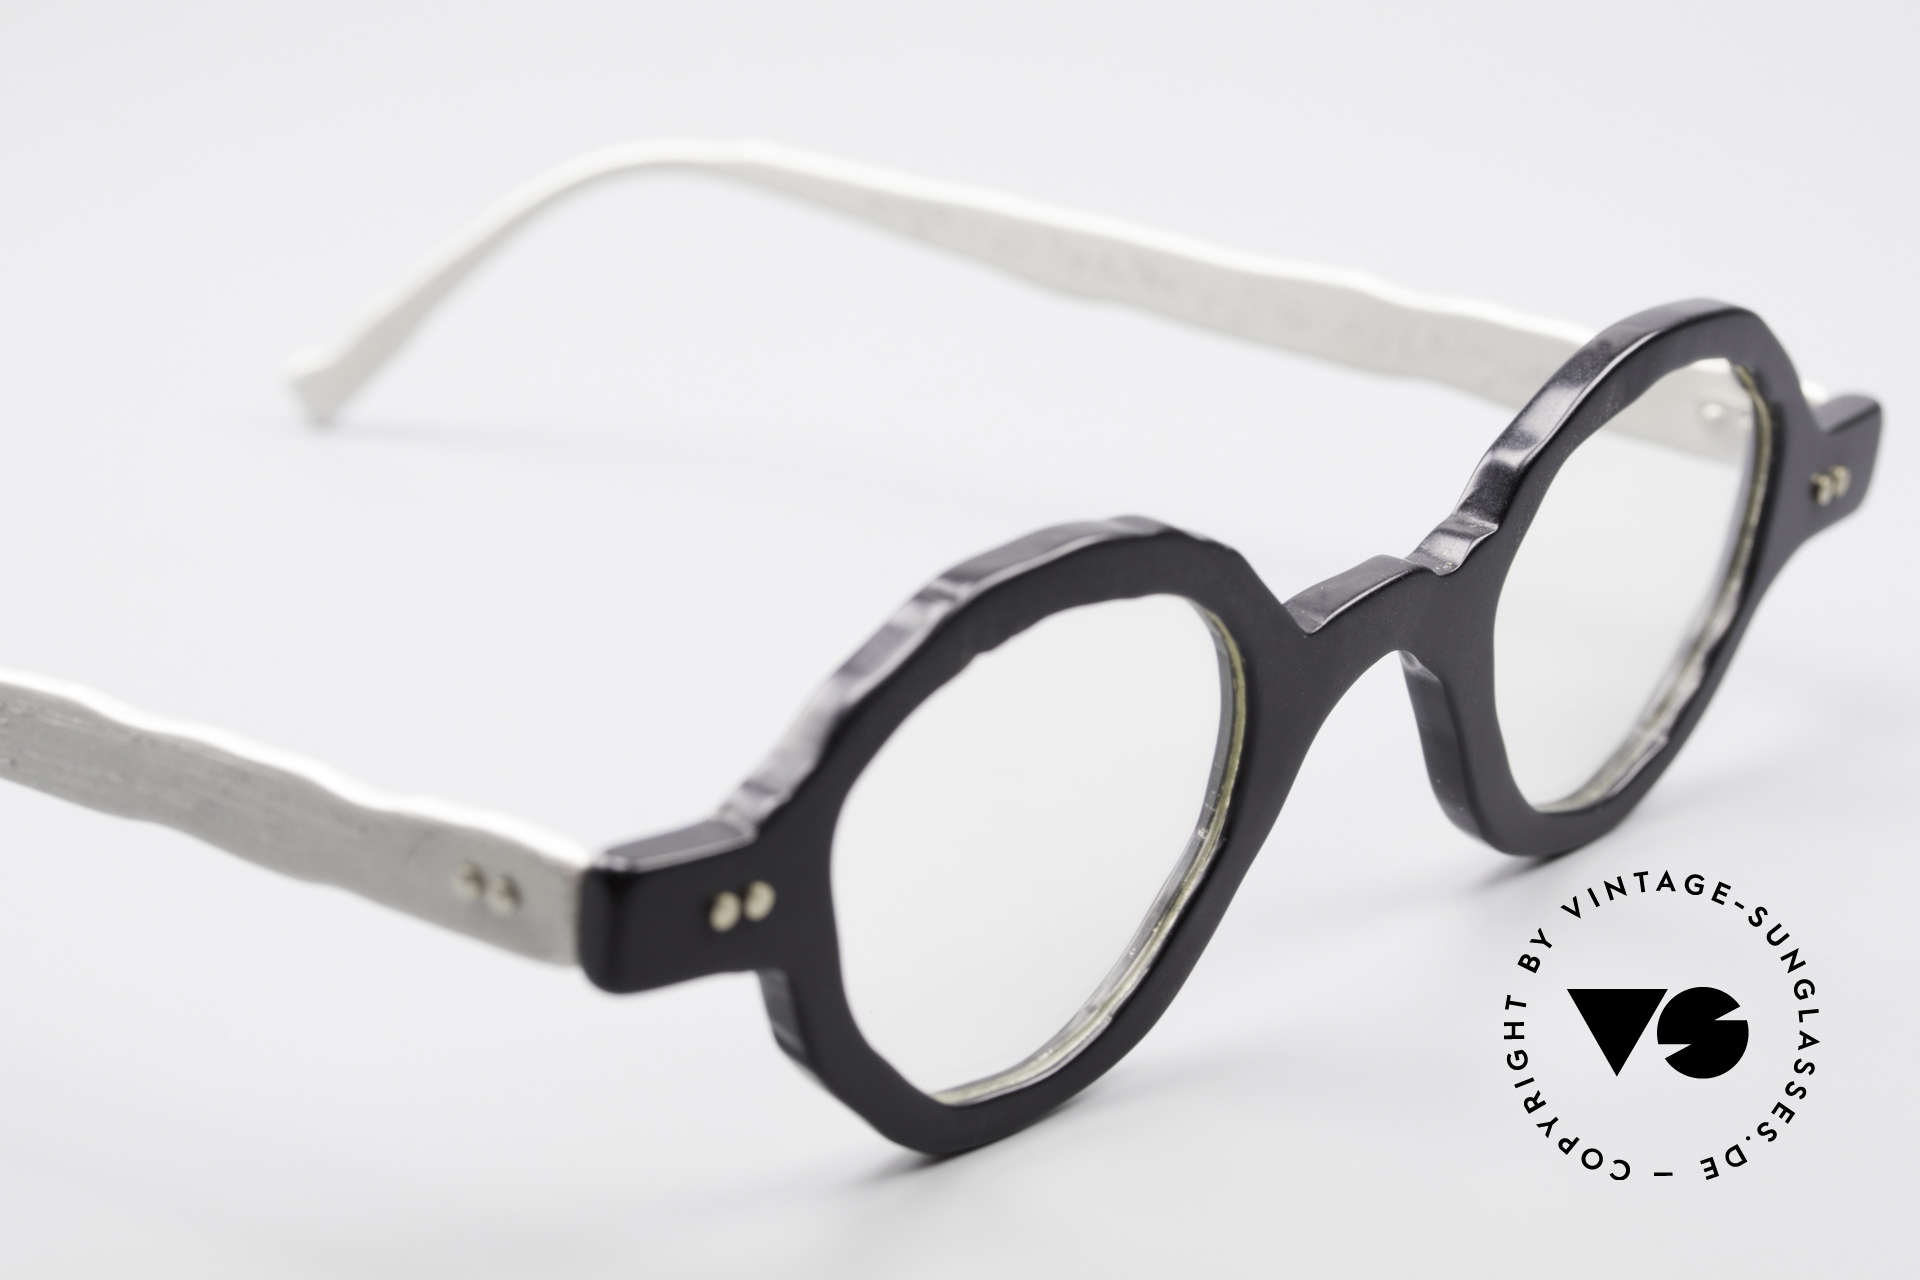 Theo Belgium Eye-Witness BD30 Avant-Garde Vintage Glasses, these specs were apparently unfinished & asymmetrical, Made for Men and Women